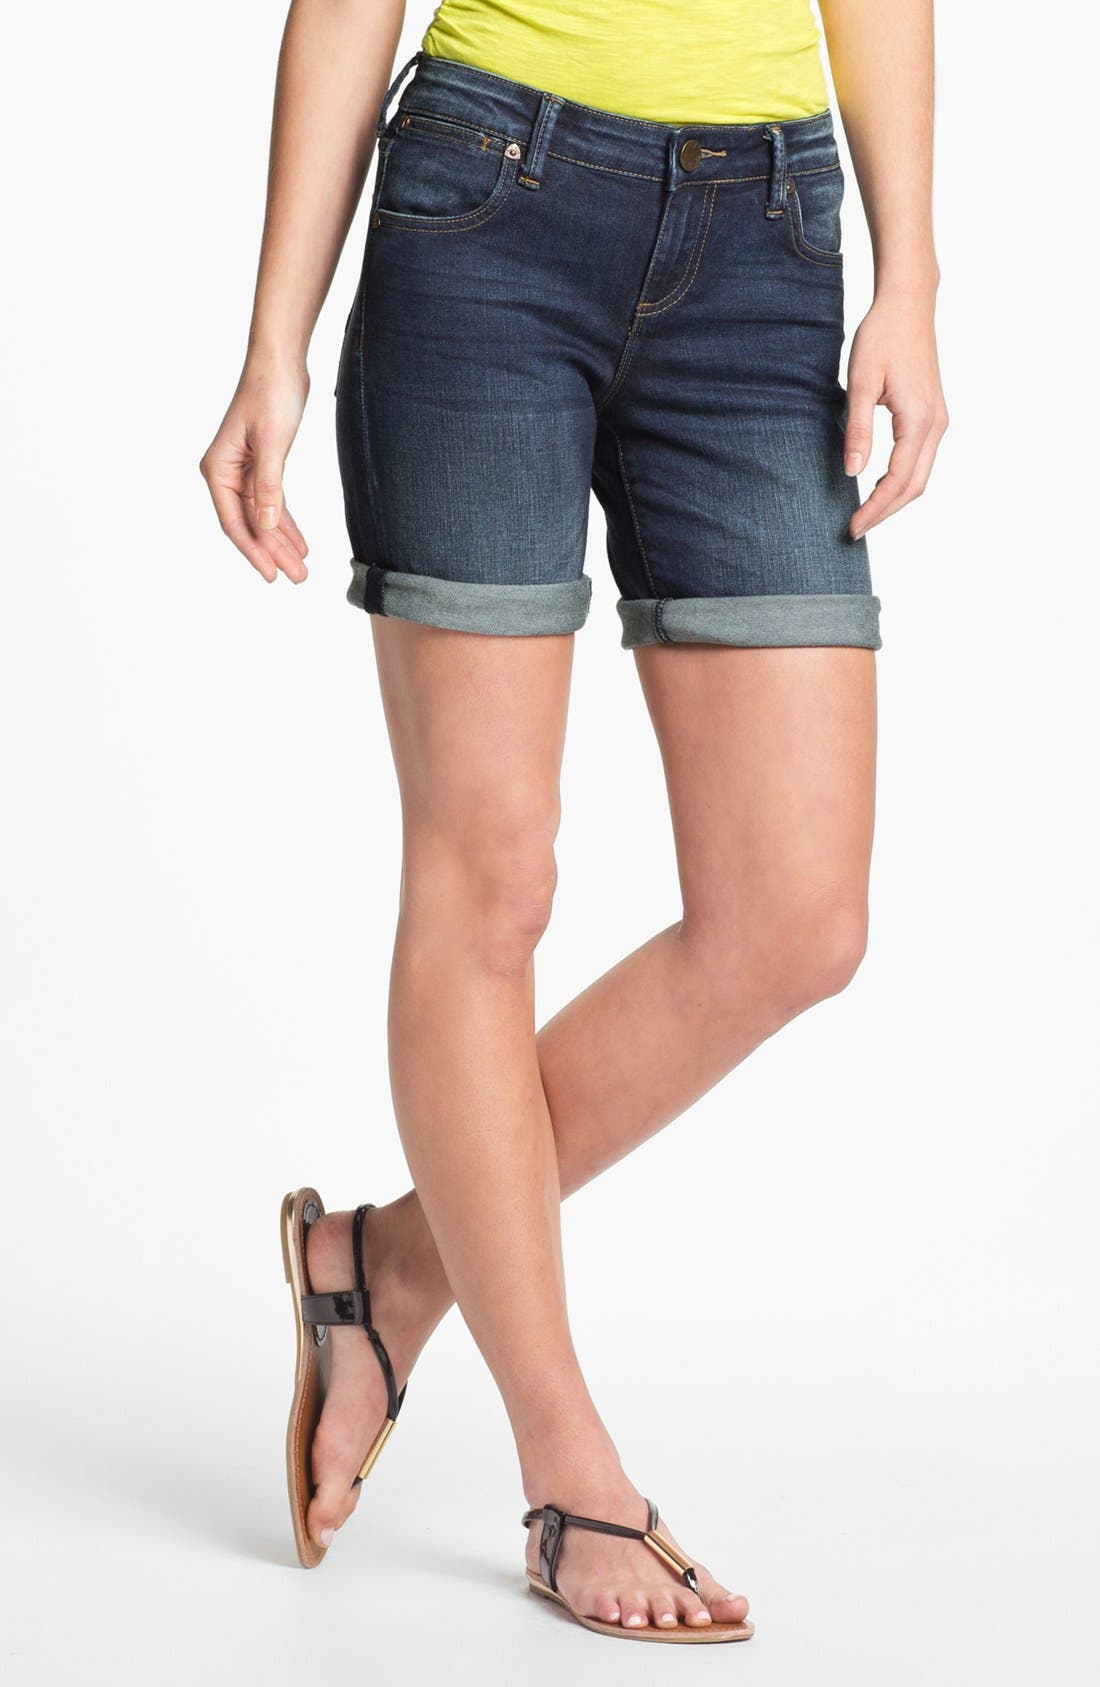 Alternate Image 1 Selected - KUT from the Kloth 'Catherine' Boyfriend Denim Shorts